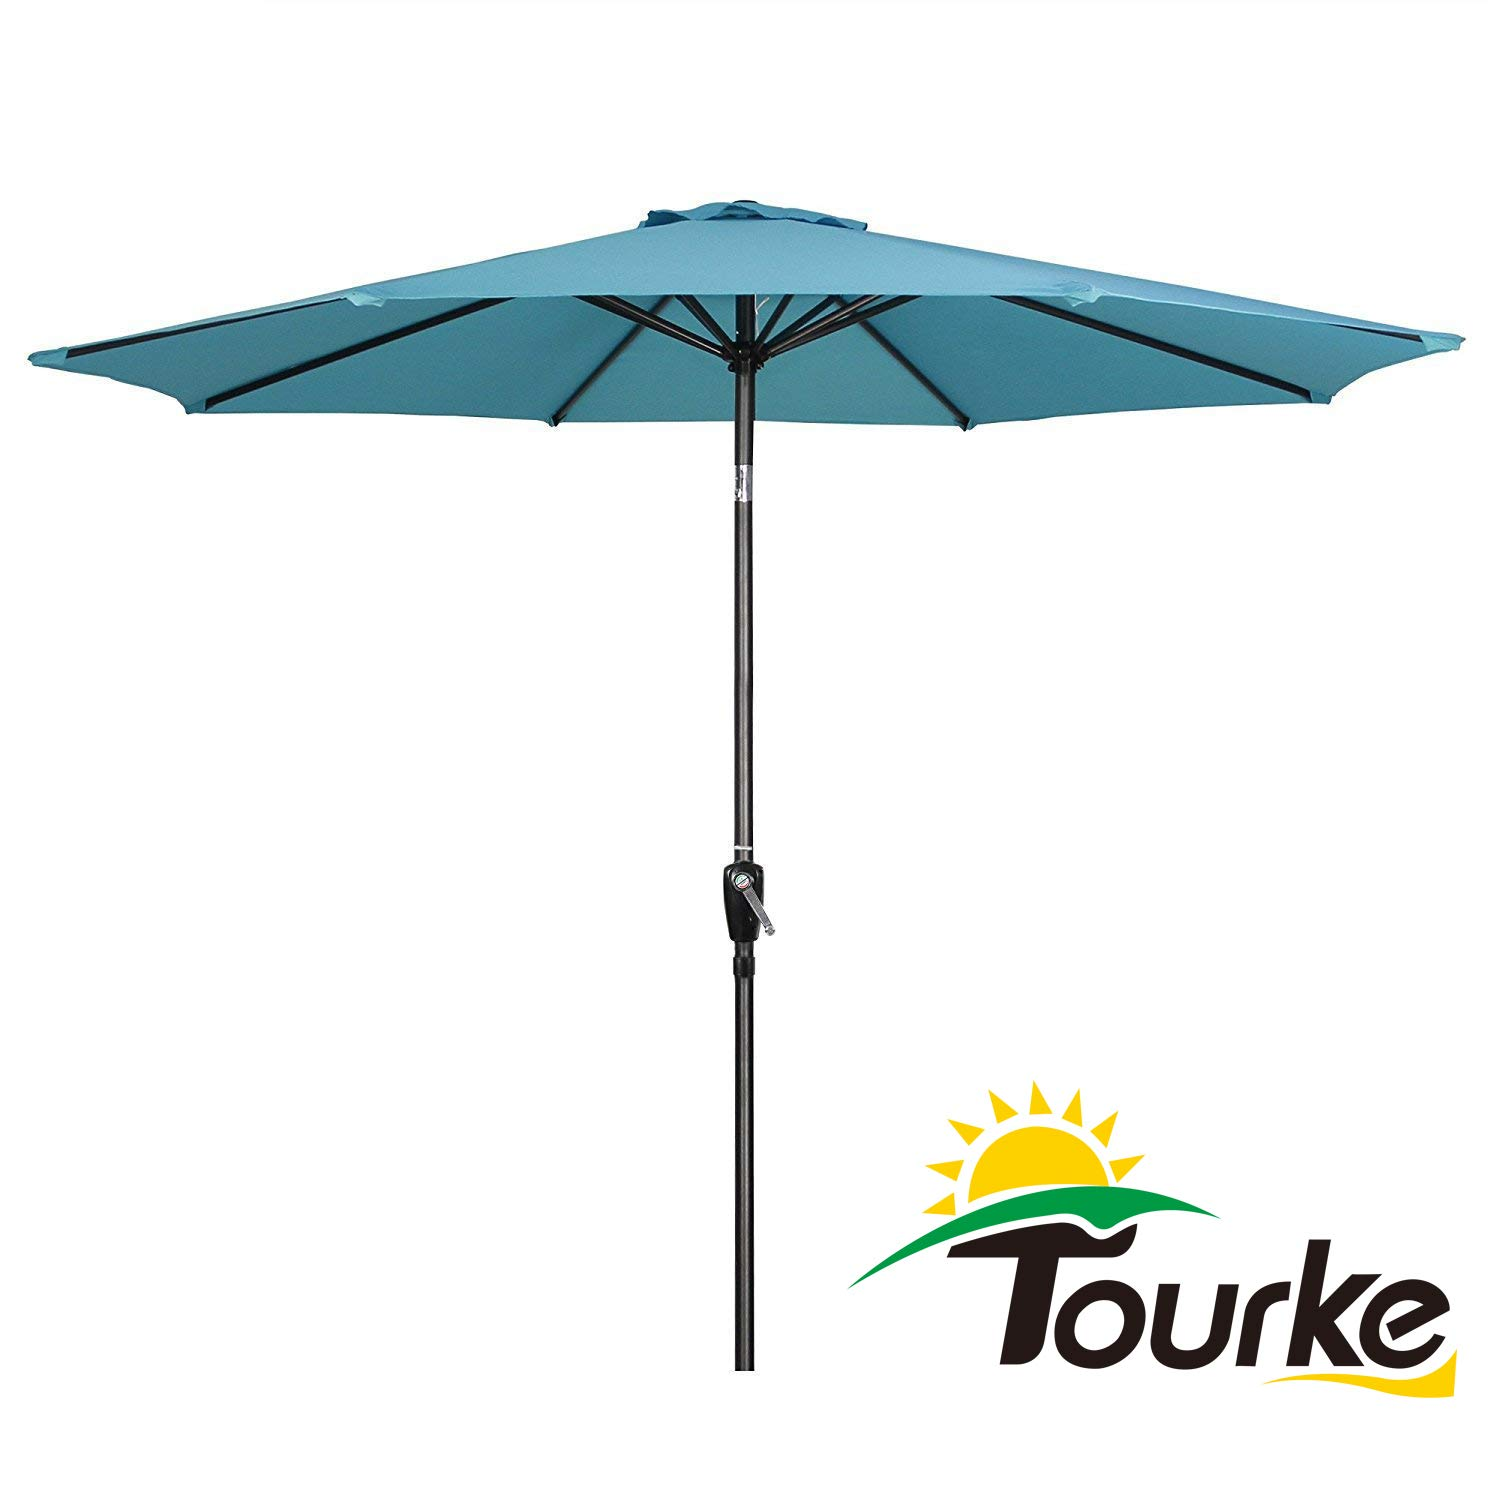 Tourke 9 Ft Patio Umbrella Outdoor Table Umbrella Crank, 8 Rids, Push Button Tilt,for Garden, Deck, Backyard, Swimming Pool and More (Sky Blue) by Tourke